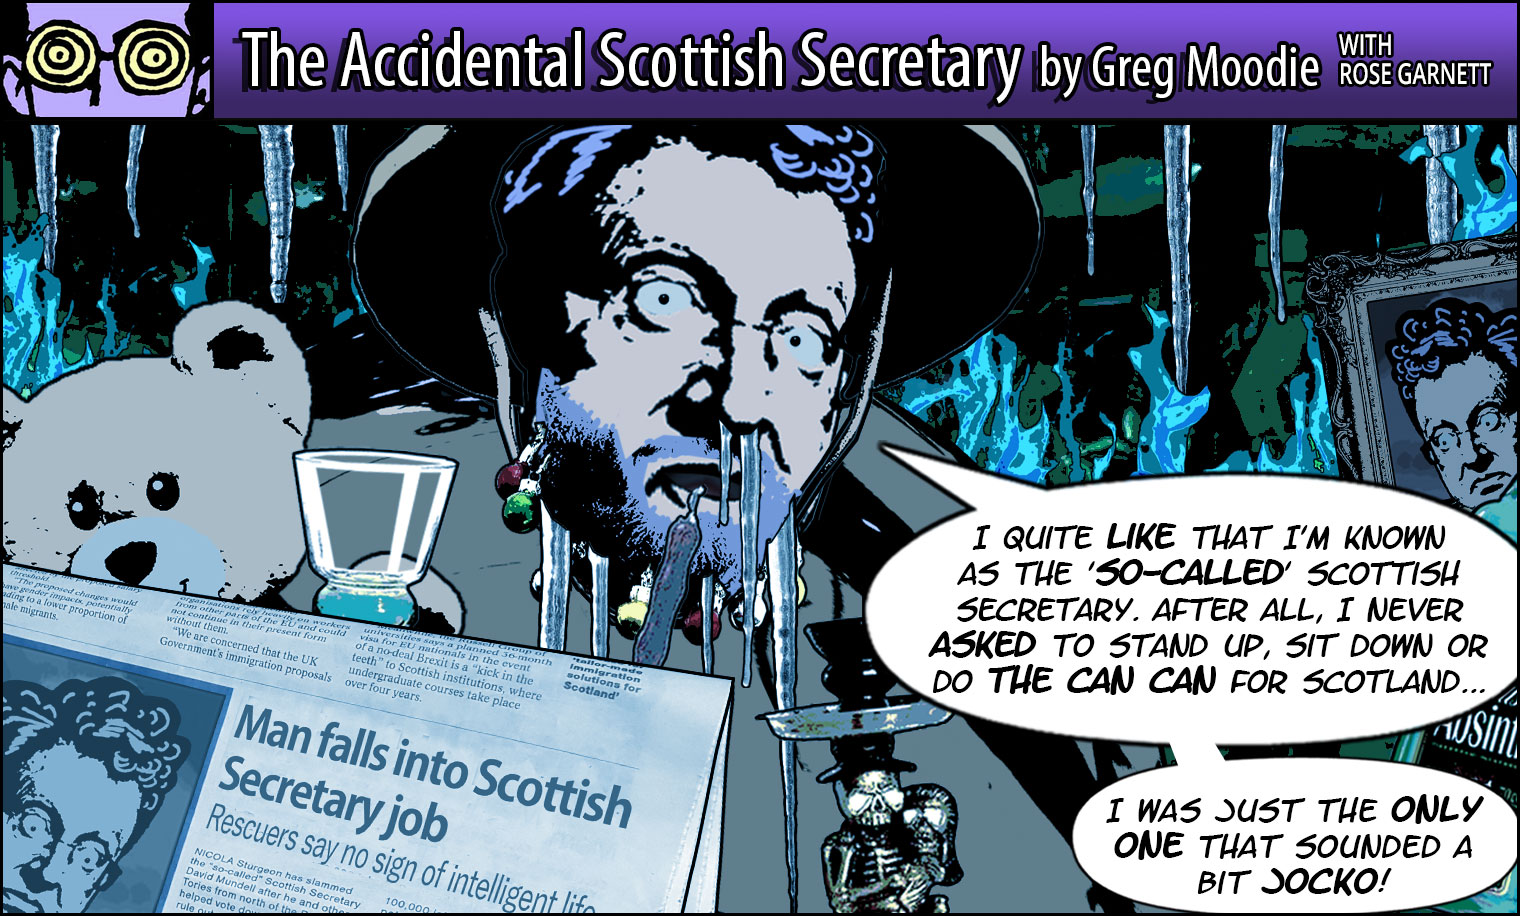 The Accidental Scottish Secretary